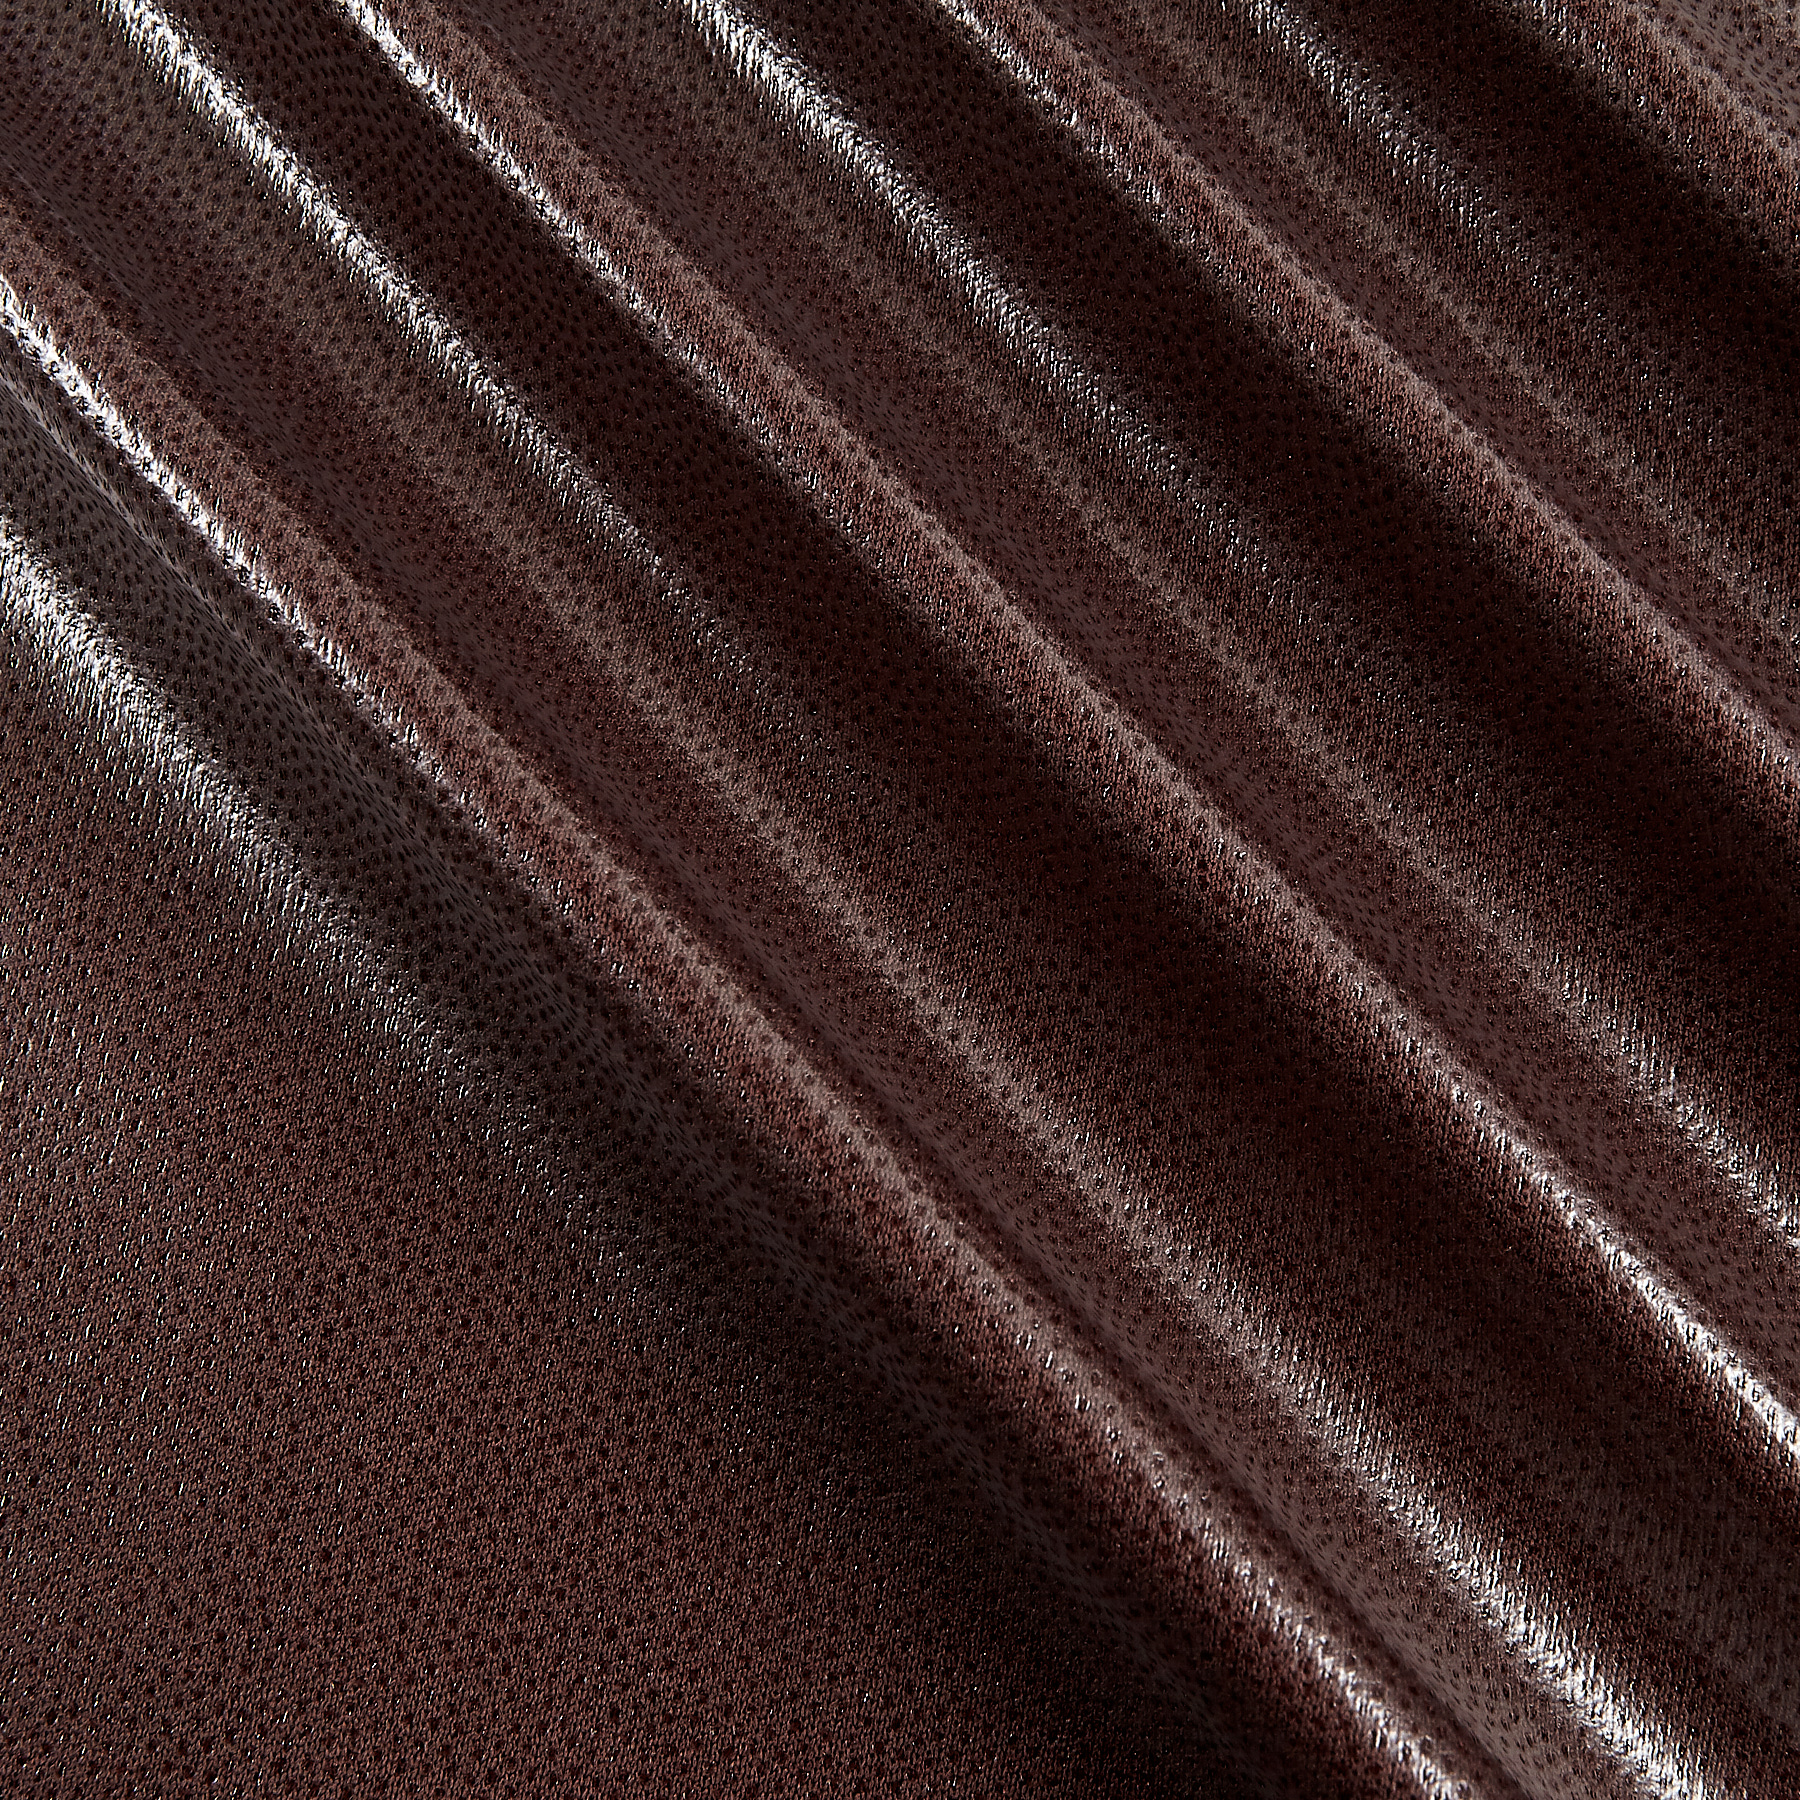 Image of PUL (Polyurethane Laminate) 1 Mil Dark Brown Fabric